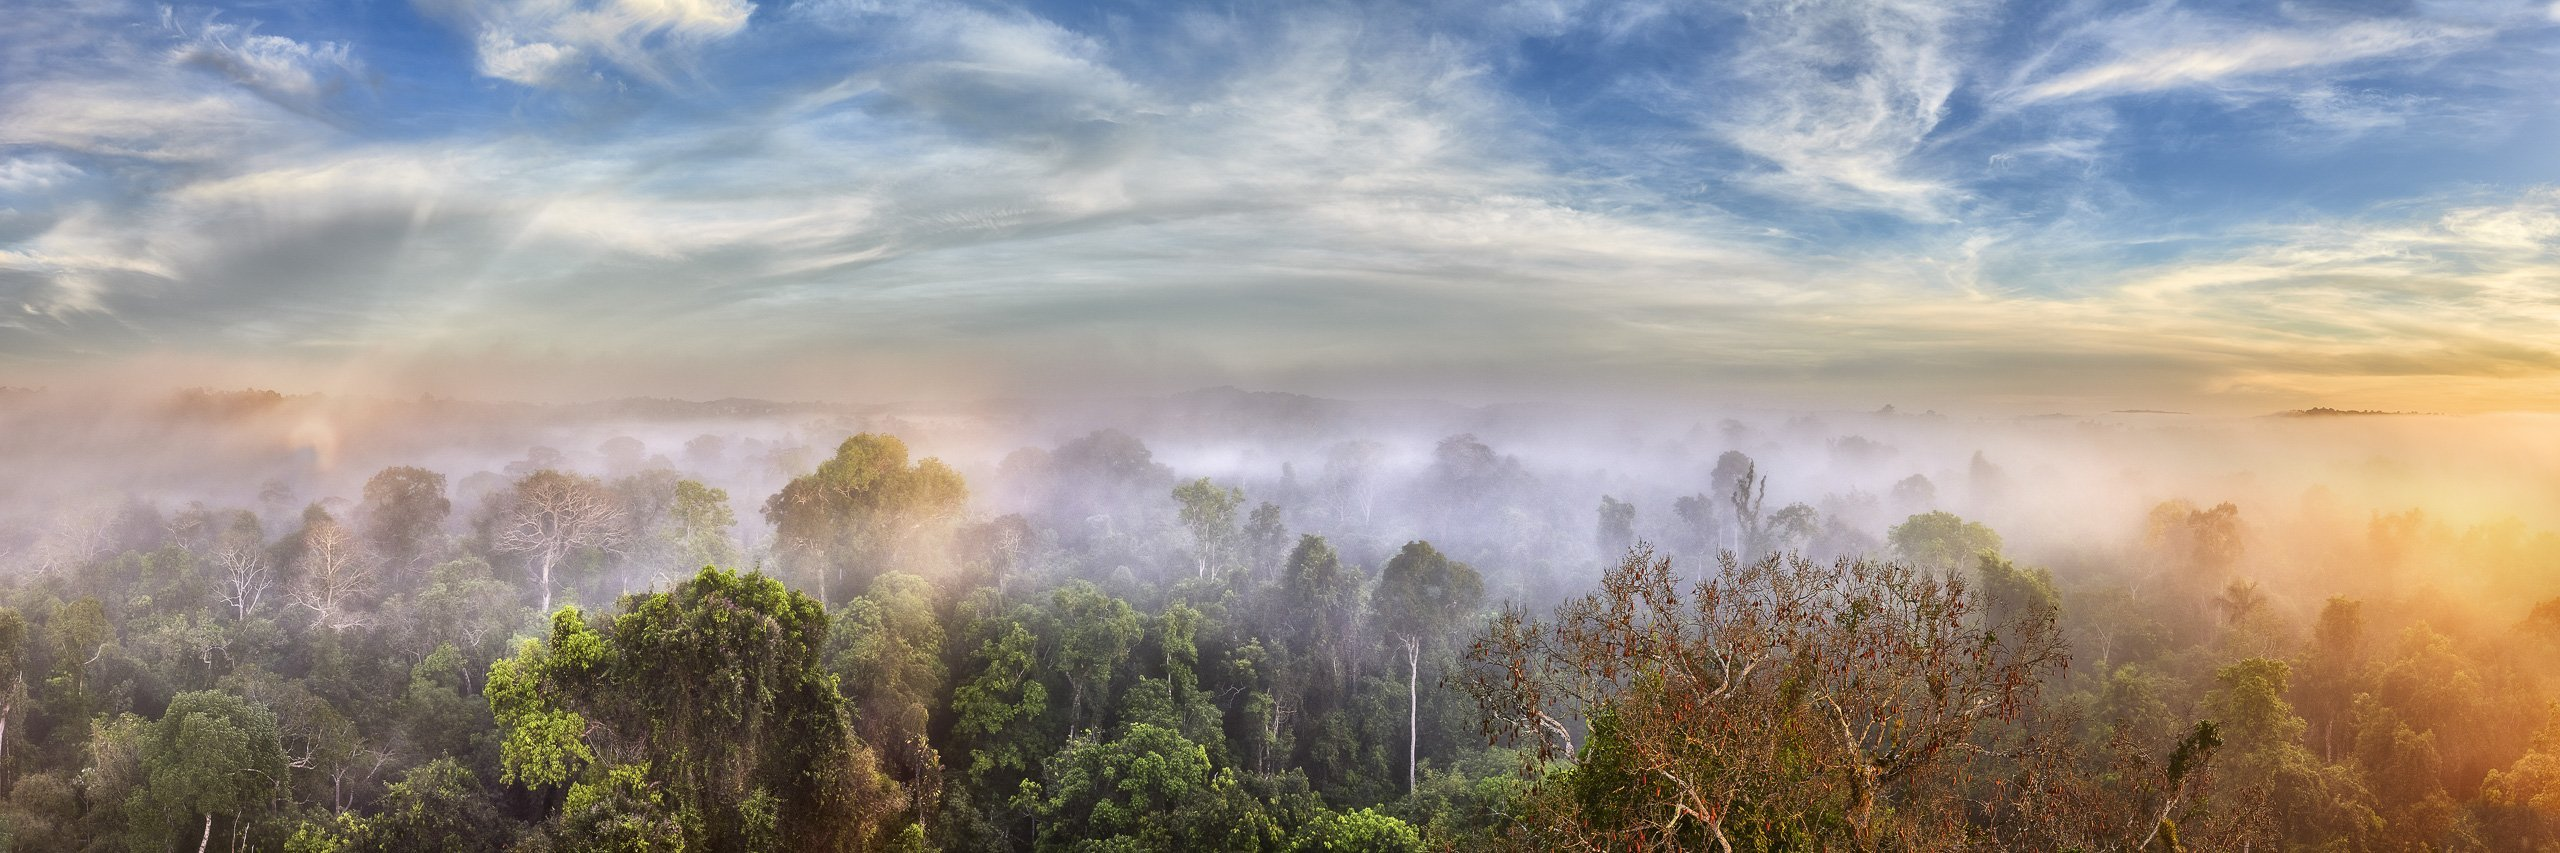 Sunrise through the mist over the Amazon jungle in Brazil.